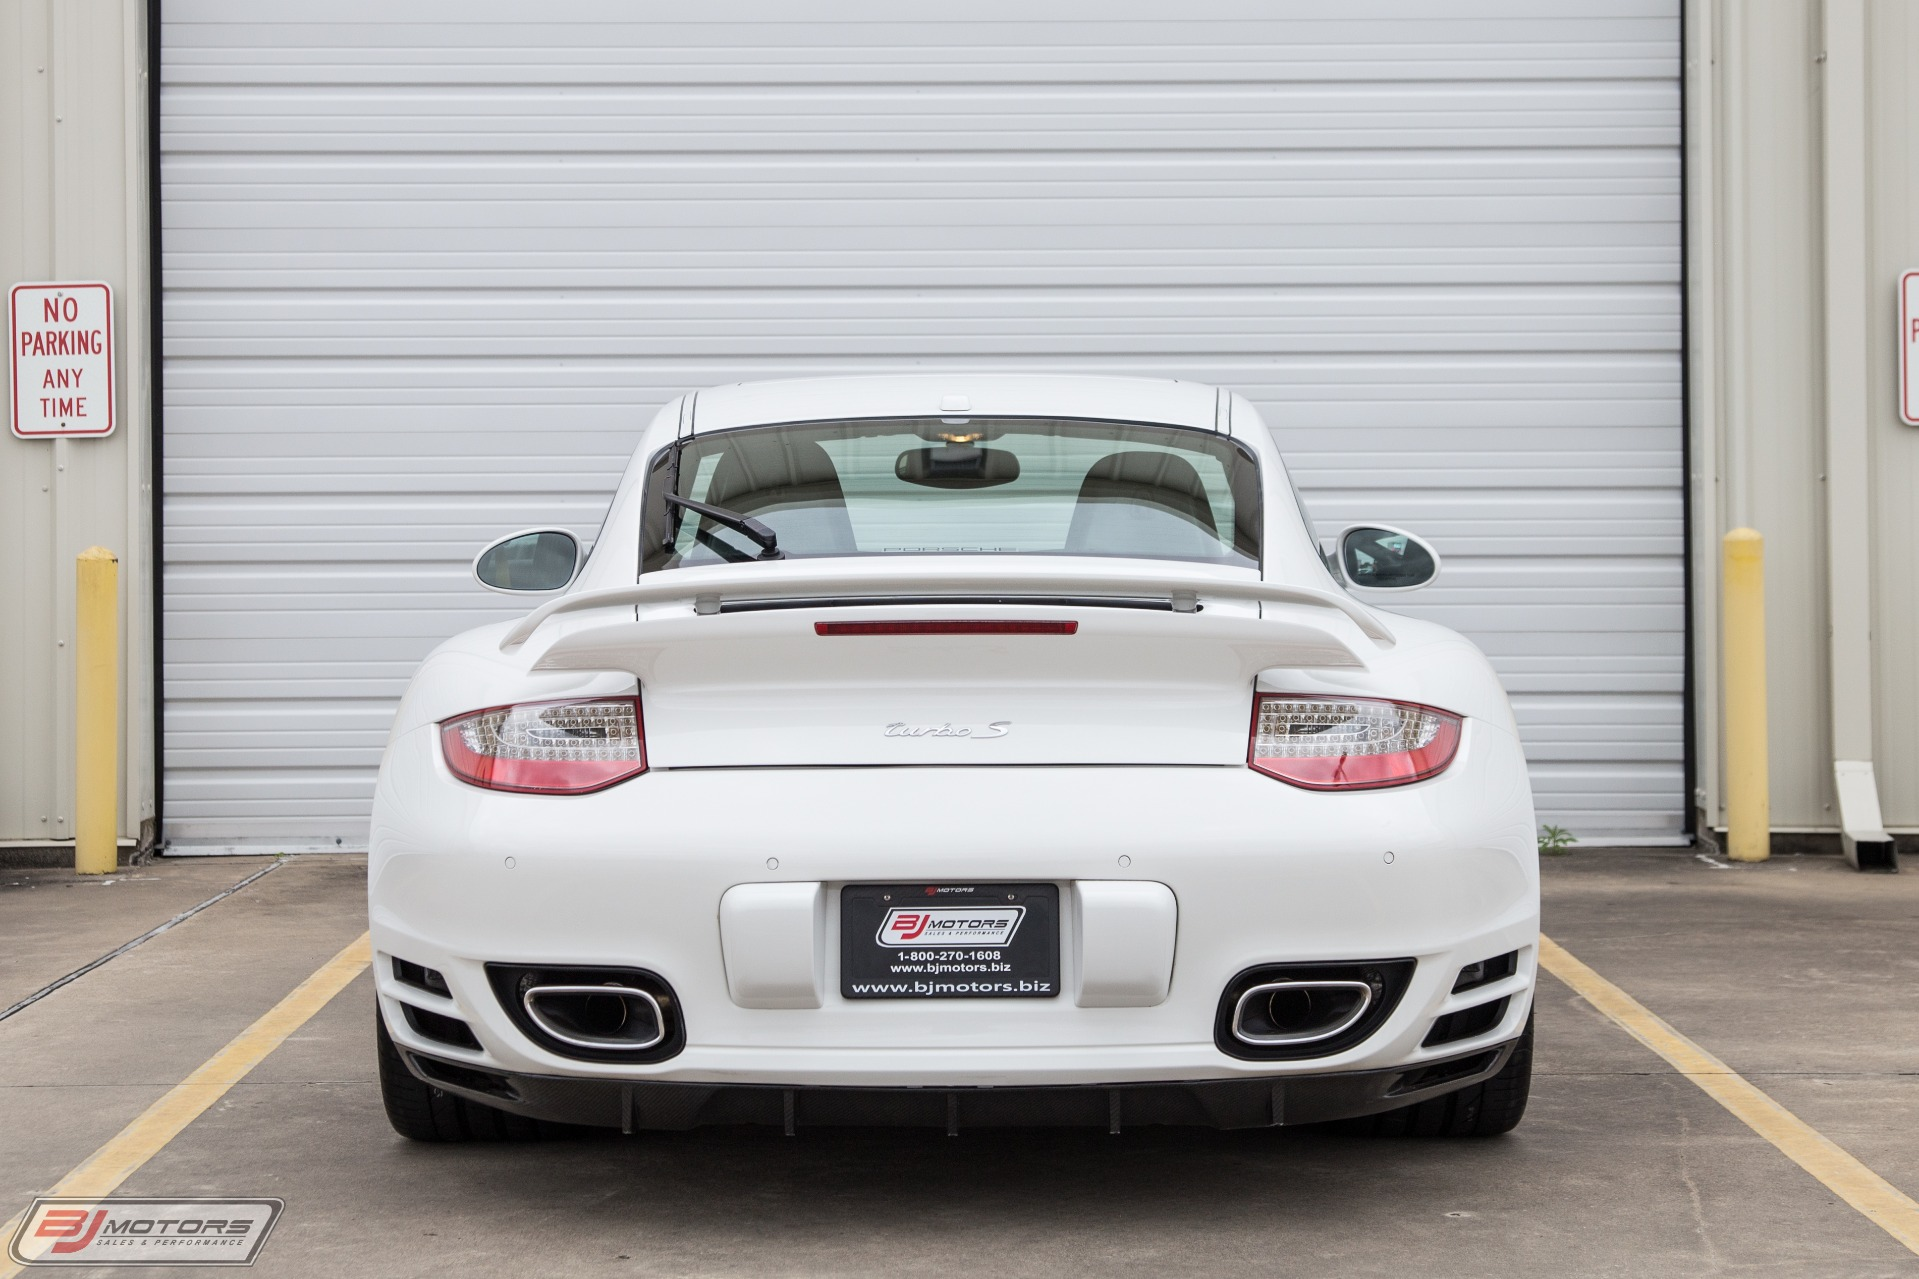 Used-2013-Porsche-911-Turbo-S